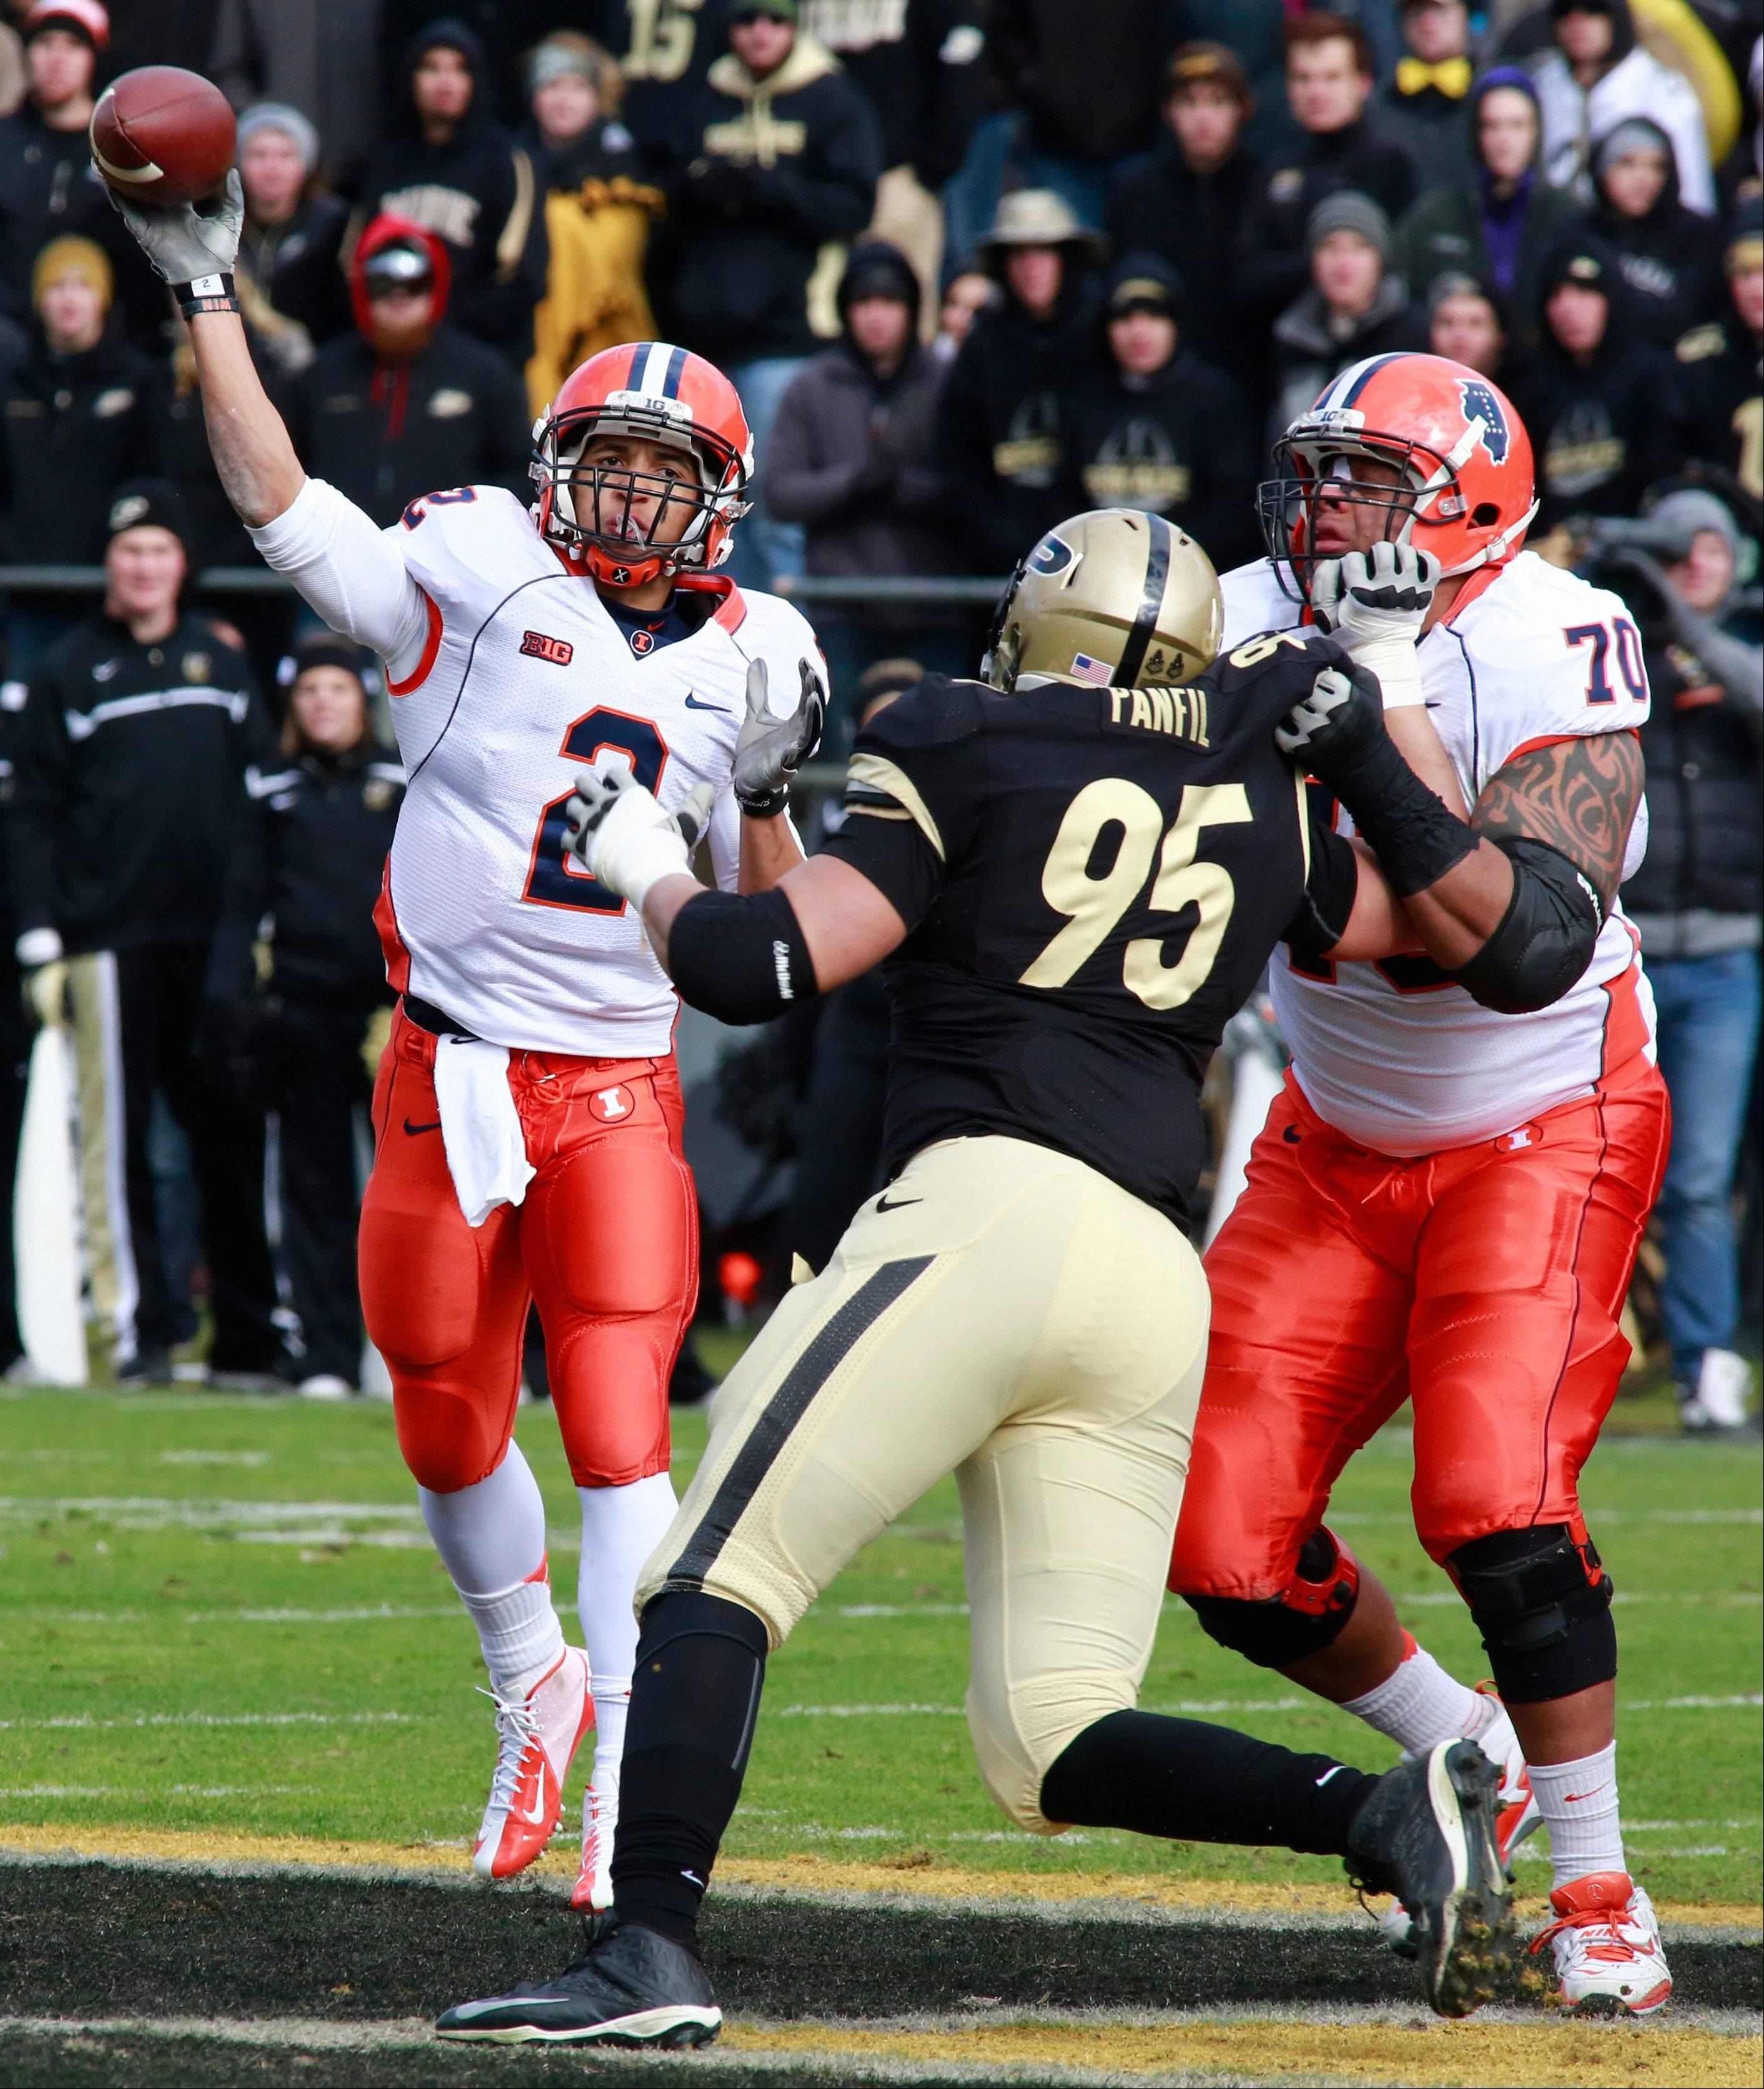 Illinois quarterback Nathan Scheelhaase, left, throws a pass as offensive lineman Corey Lewis (70) blocks Purdue defensive end Evan Panfil (95) in the first half Saturday in West Lafayette, Ind..